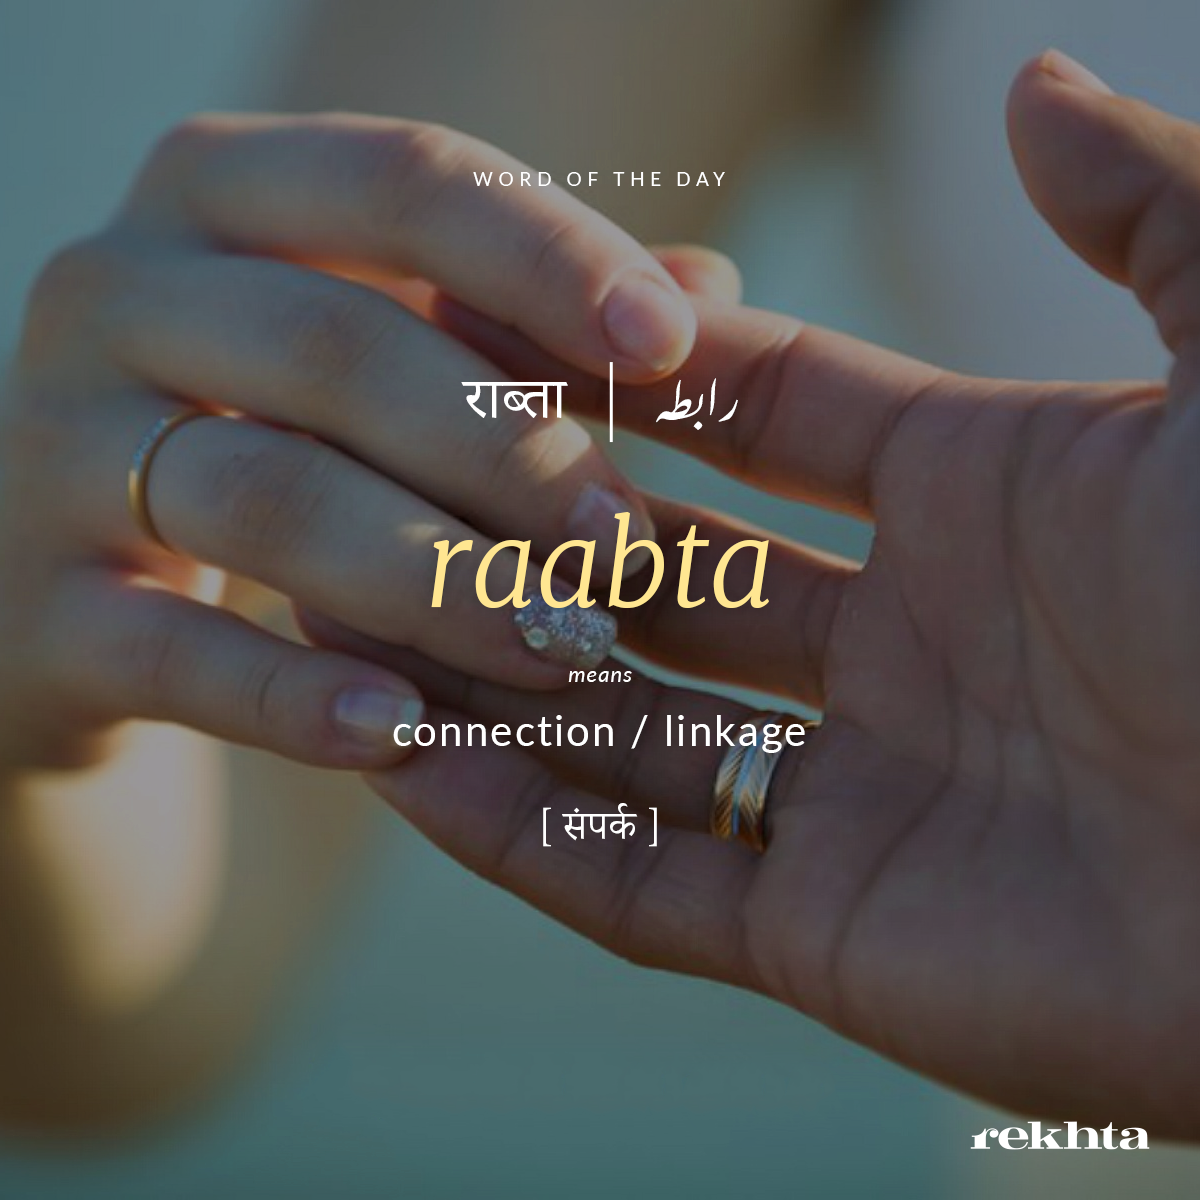 One word quotes by Rekhta Foundation on Urdu Word of the